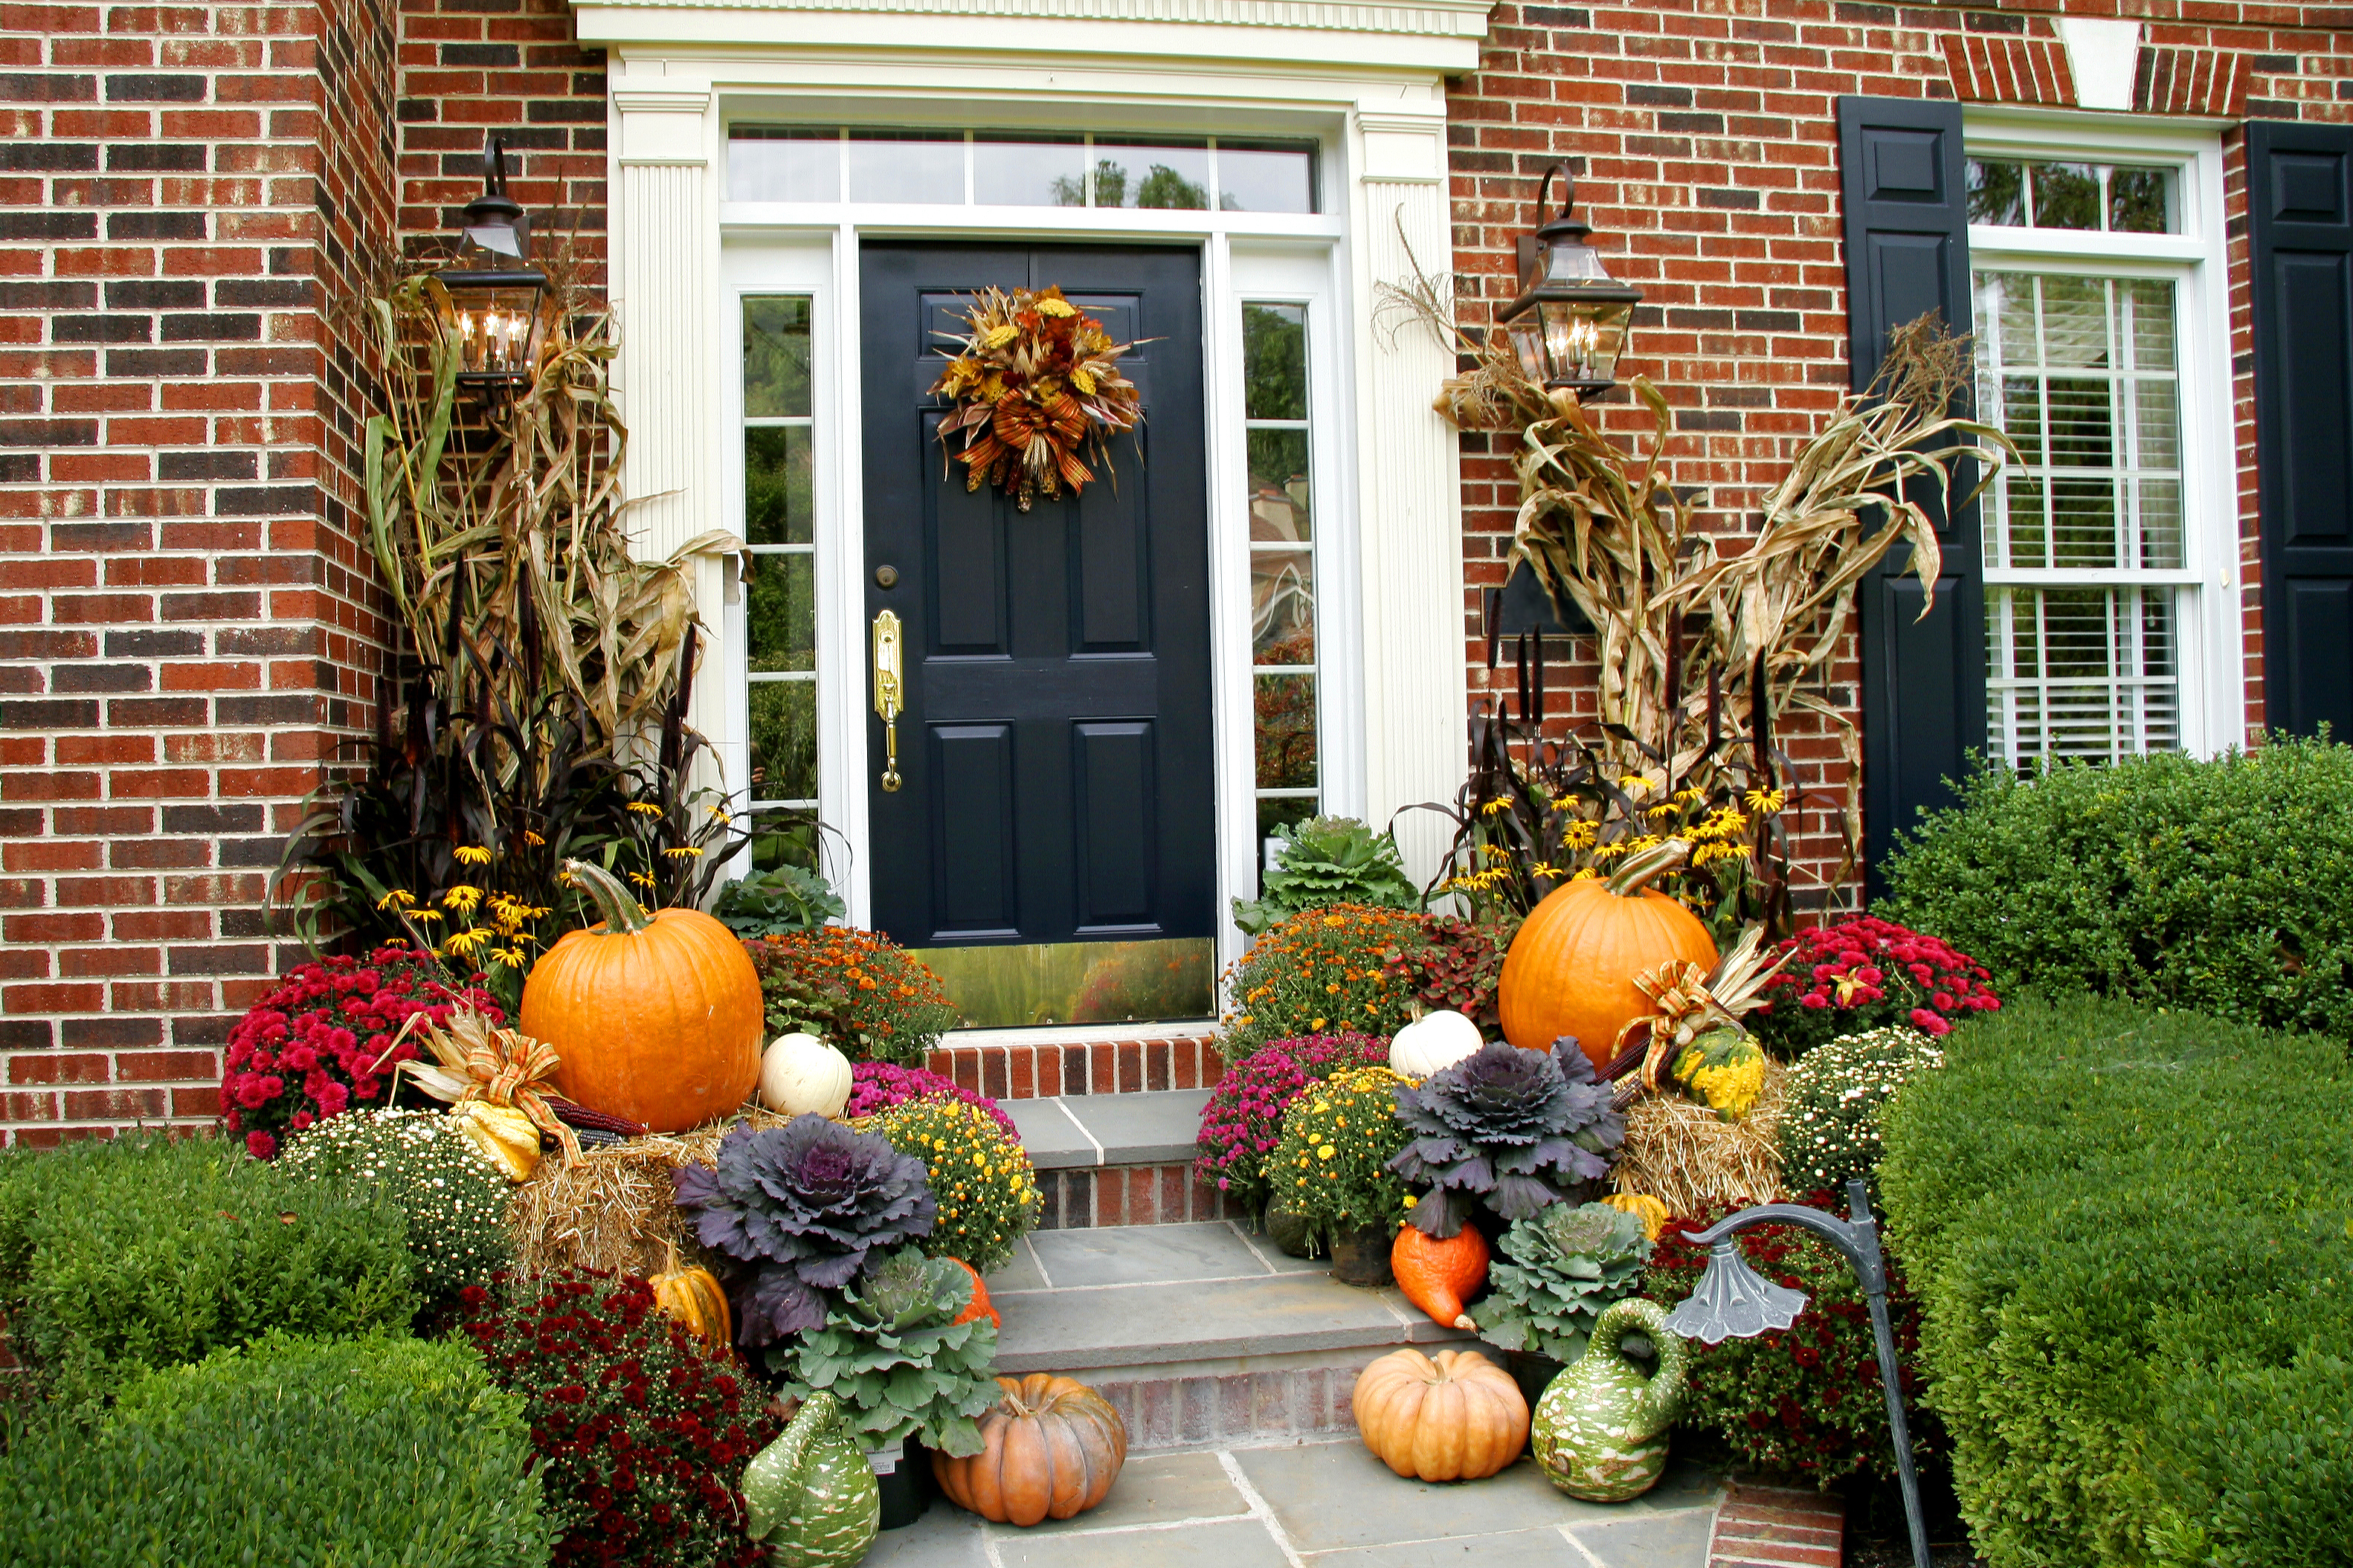 fall decorating homes porch decor decorations outdoor door autumn yard outside decoration decorated decorate garden halloween harvest porches steps pumpkins